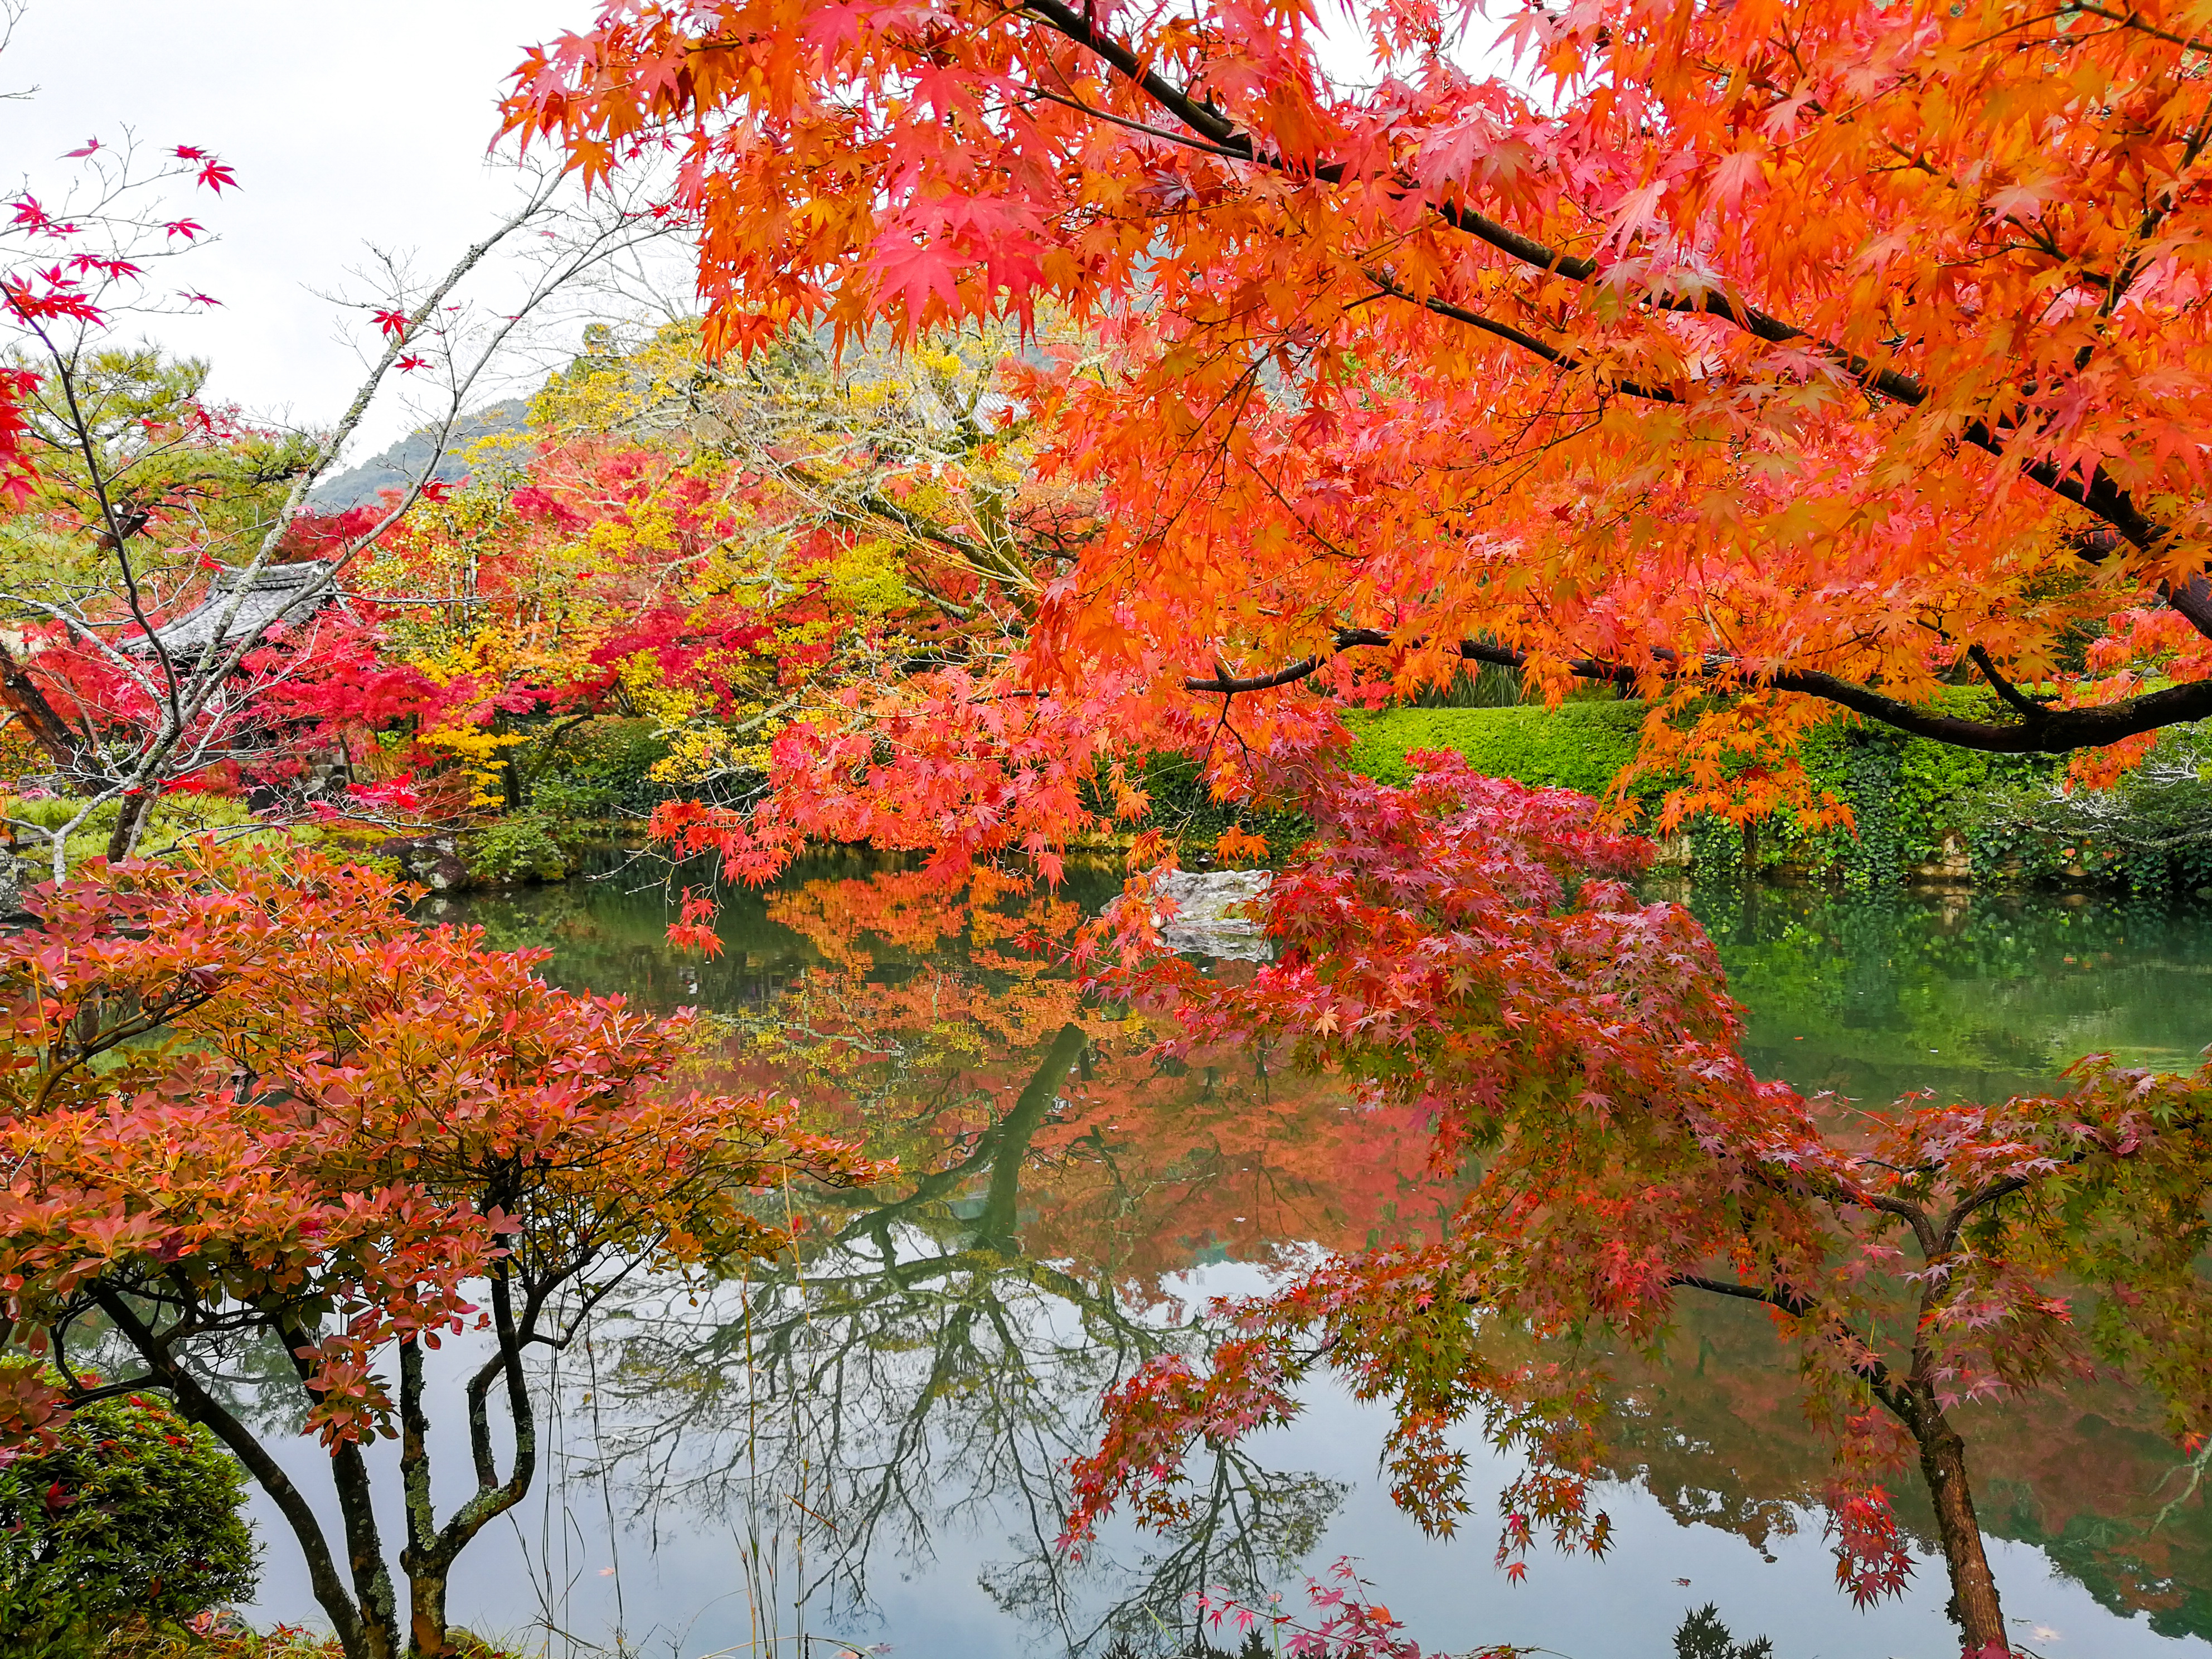 Bright orange maple trees stretch out over (and reflect in) a calm pond.